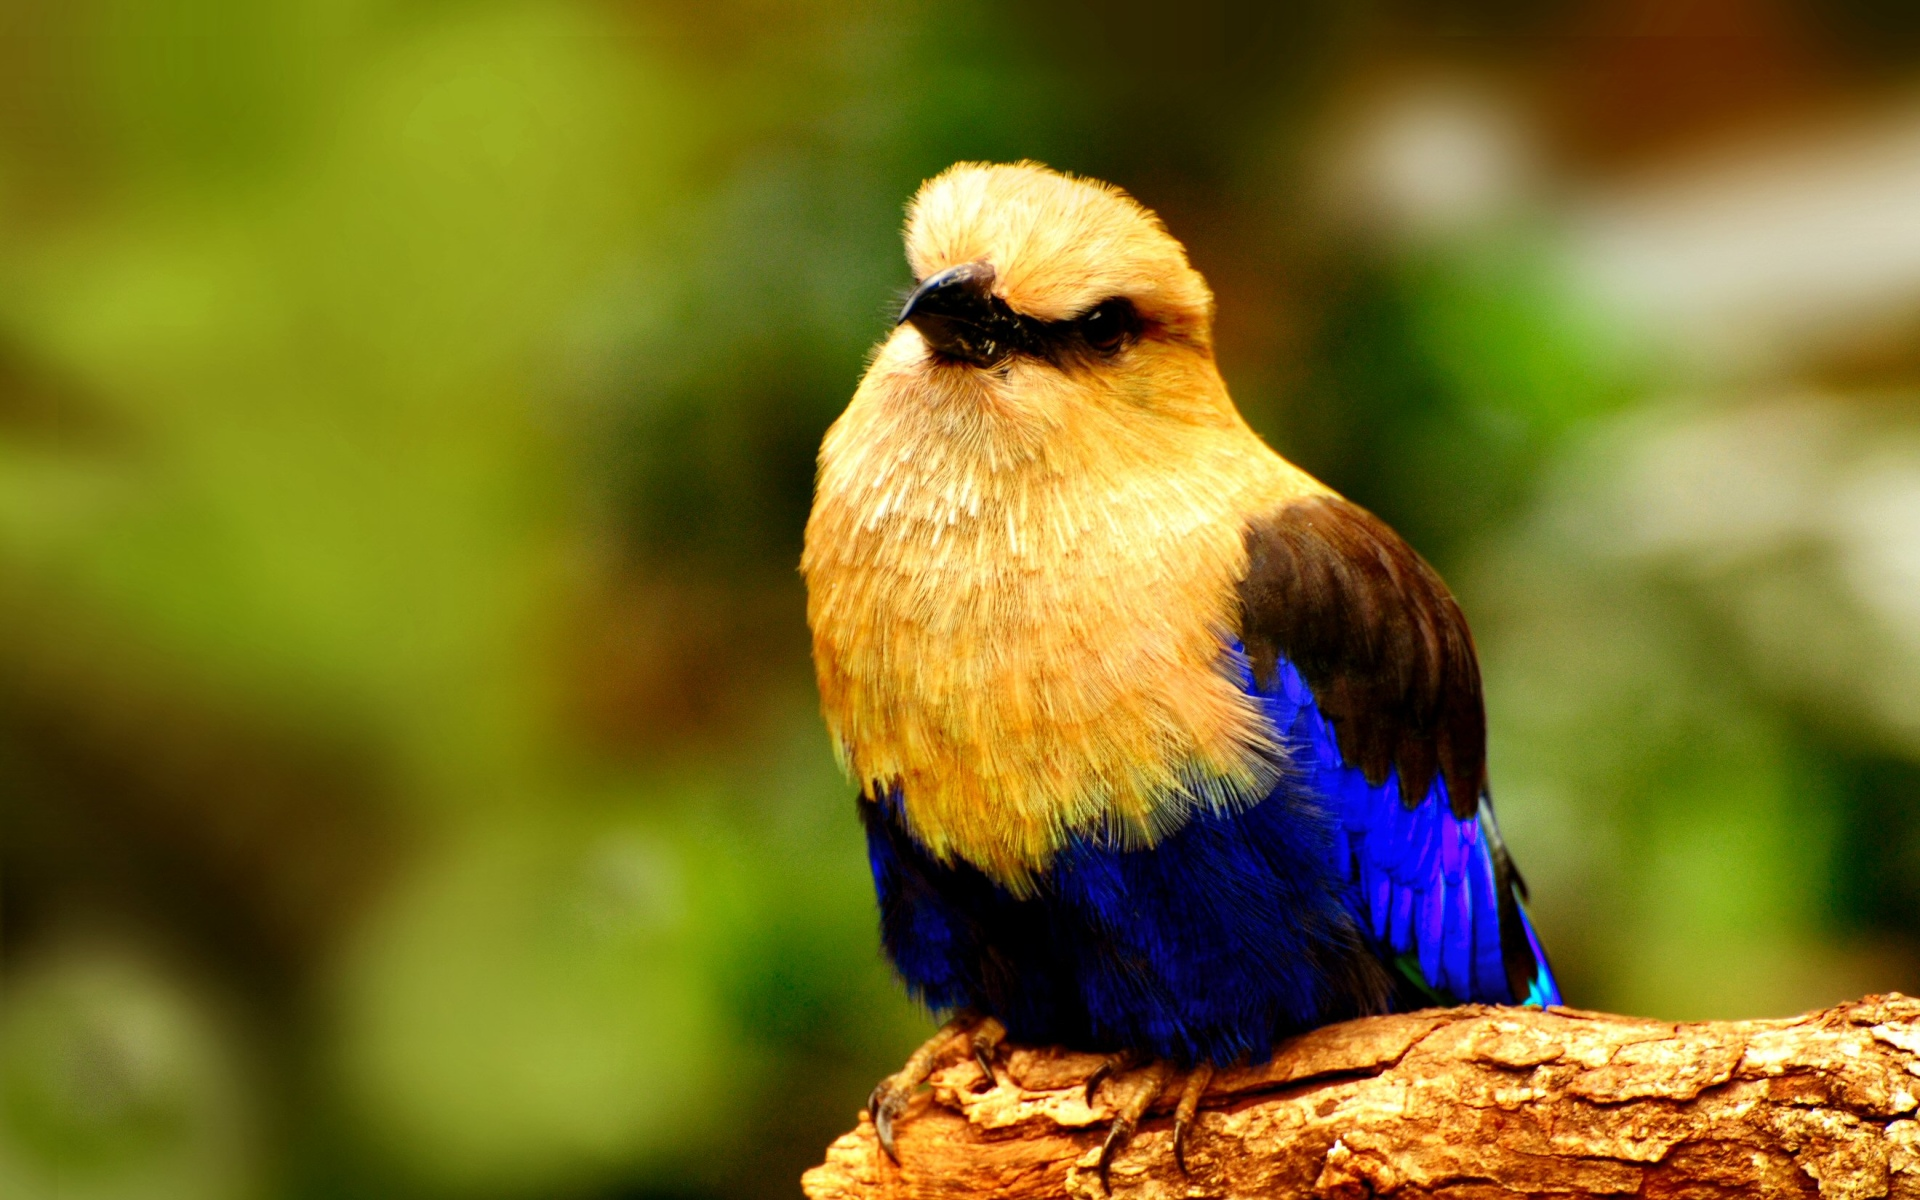 cute bird with amazing colors